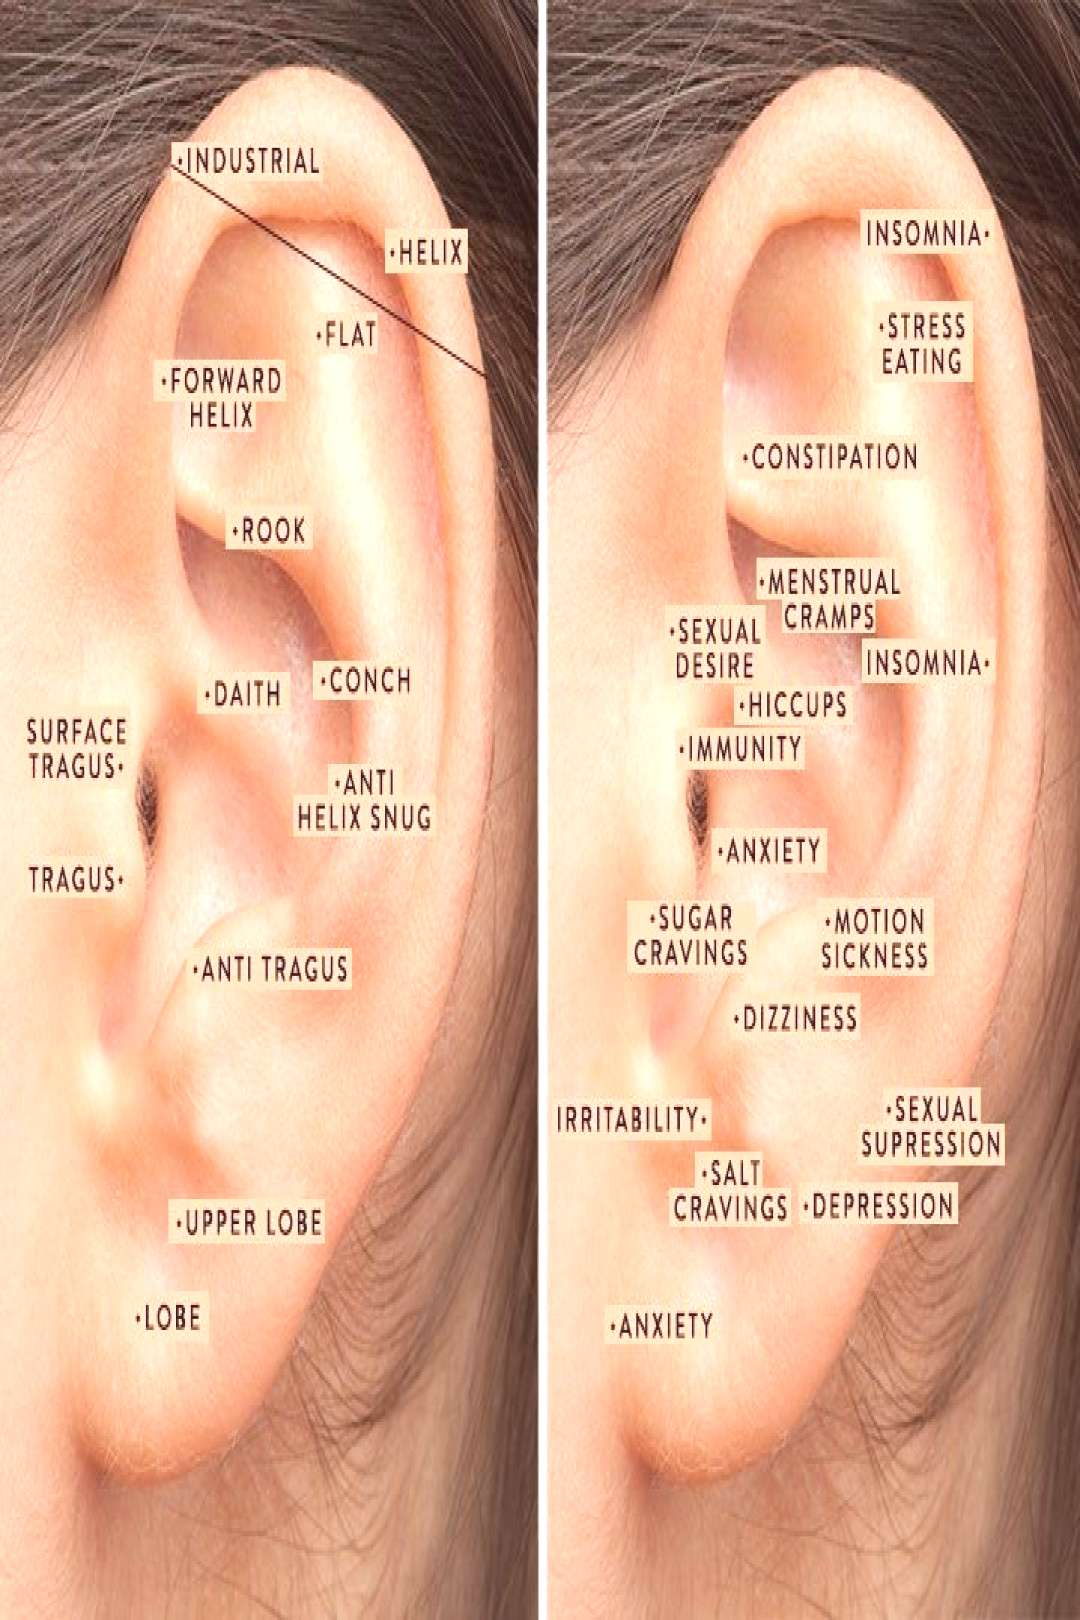 Are Your Trendy Ear Piercings Helping You On A Wellness Level? - Are Your Trendy Ear Piercings Hel